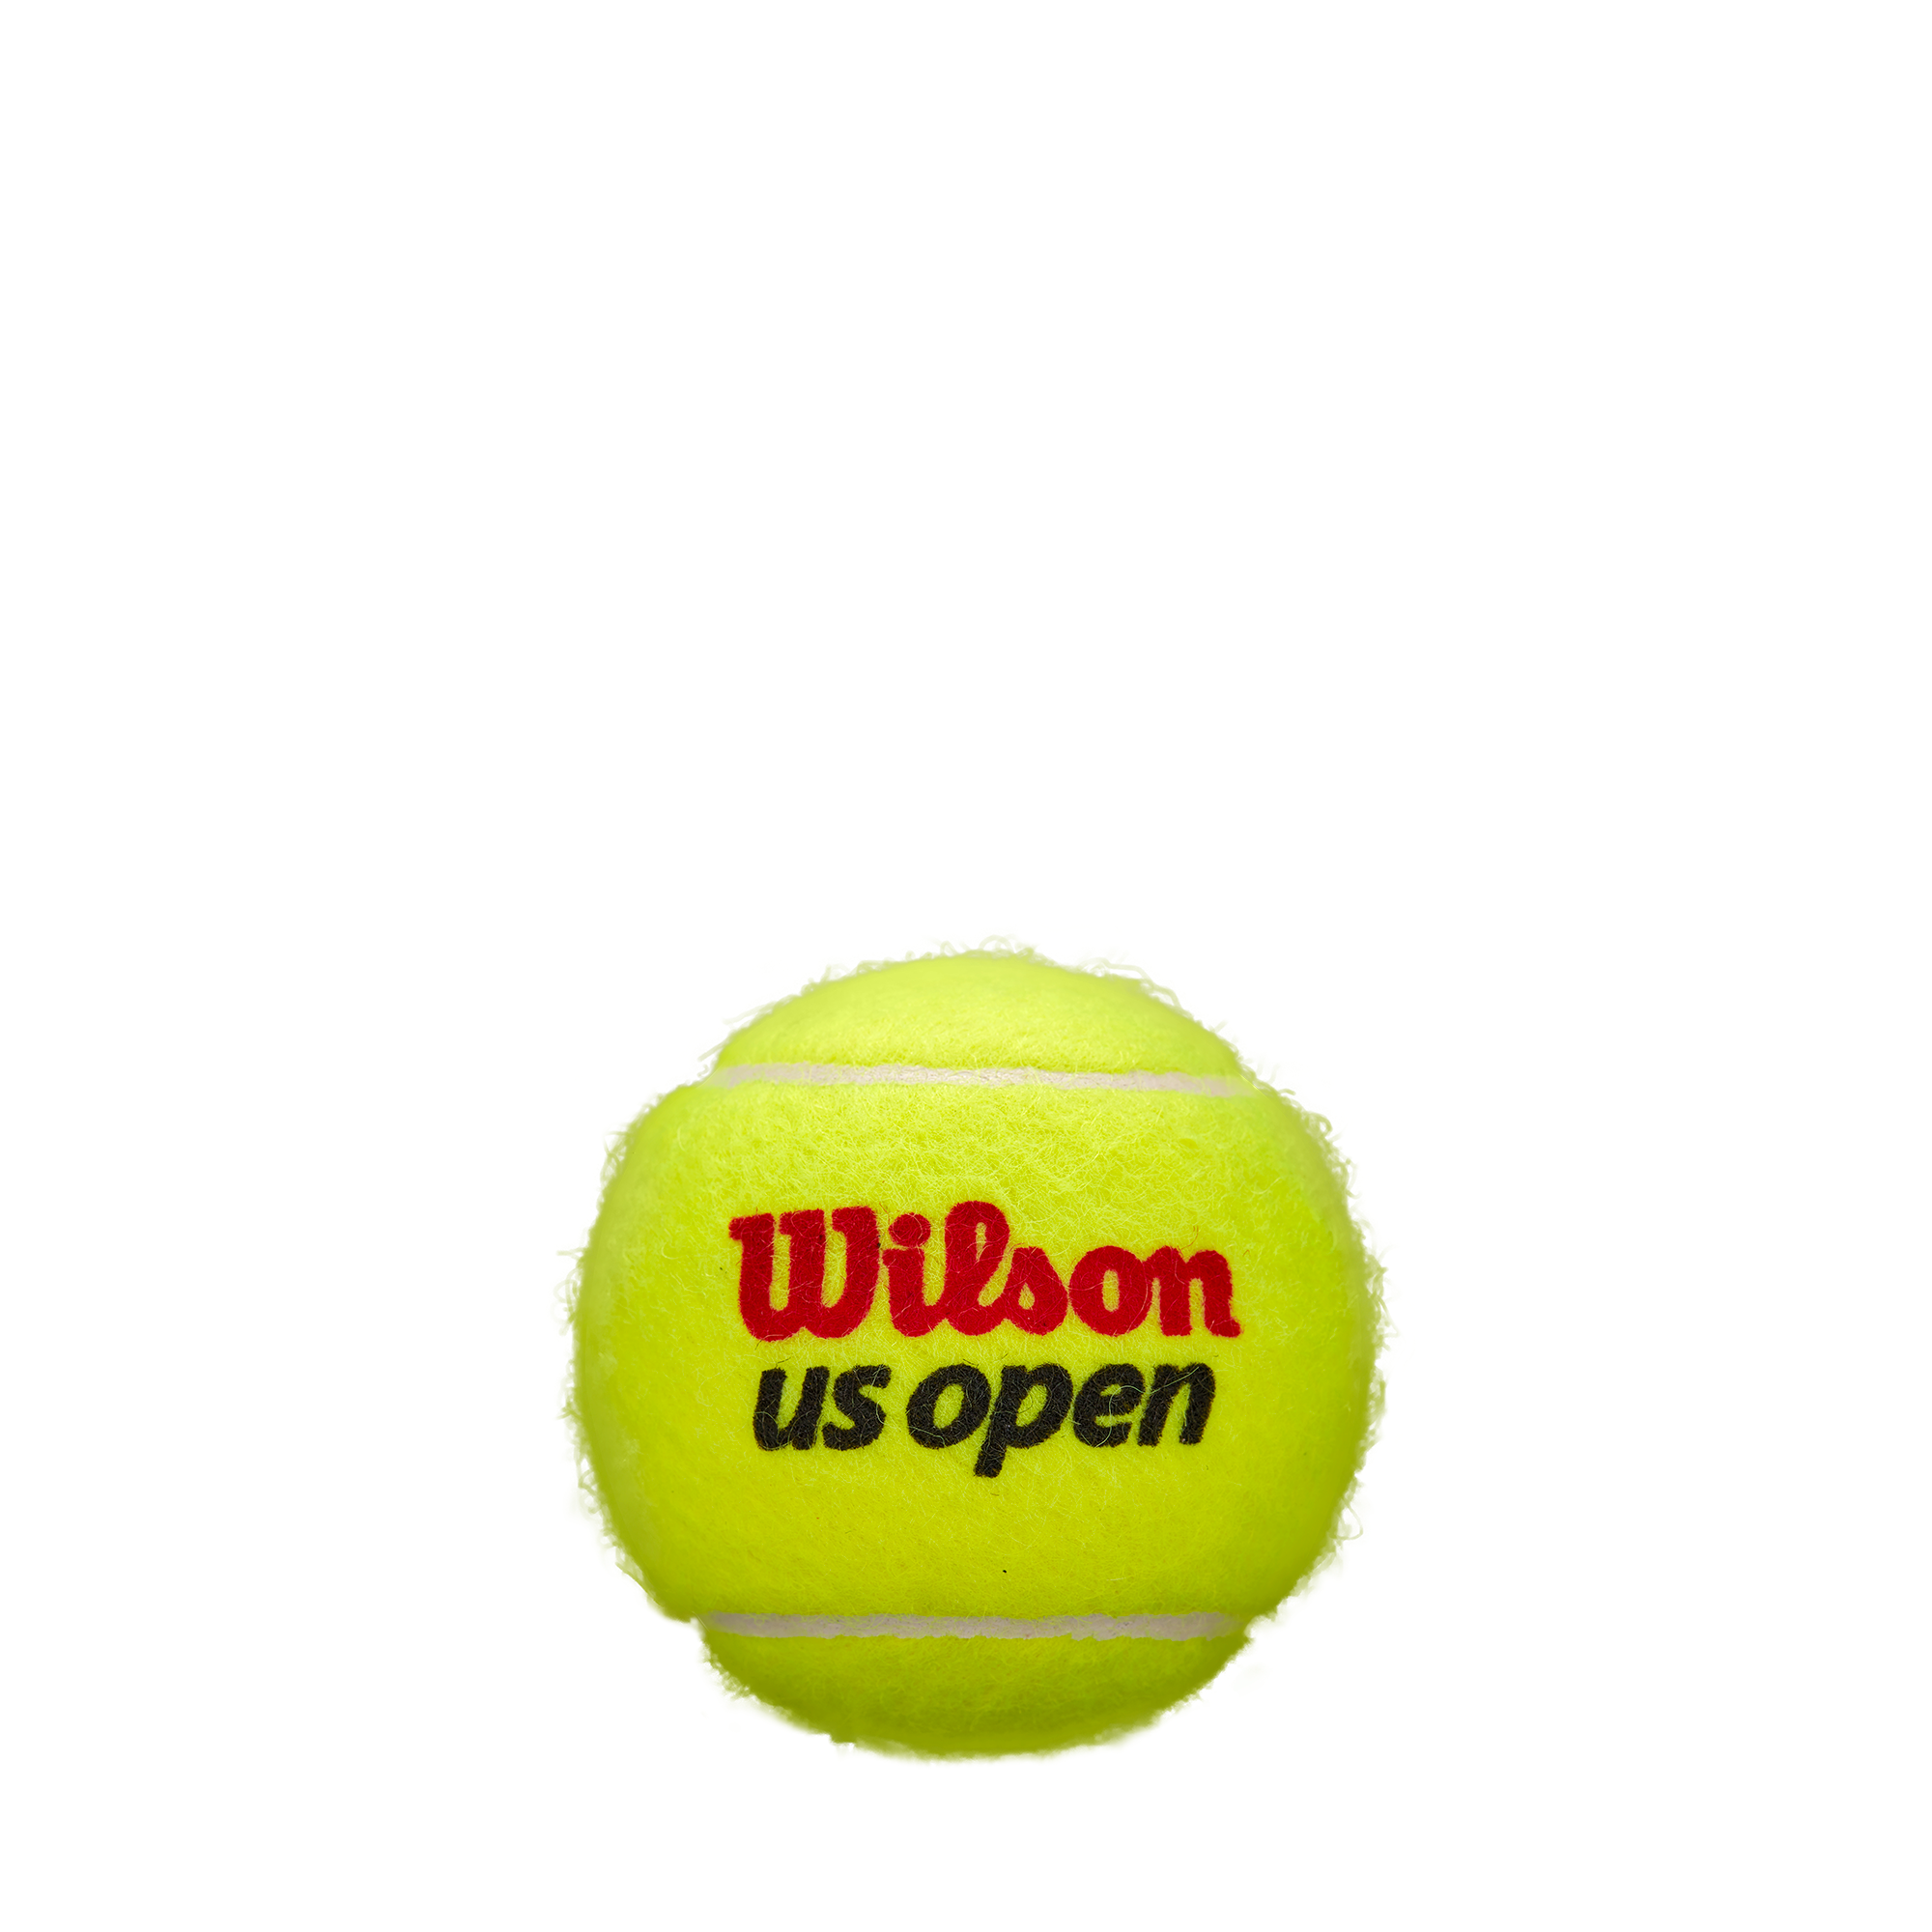 Wilson Us Open Regular Duty 3 Balls